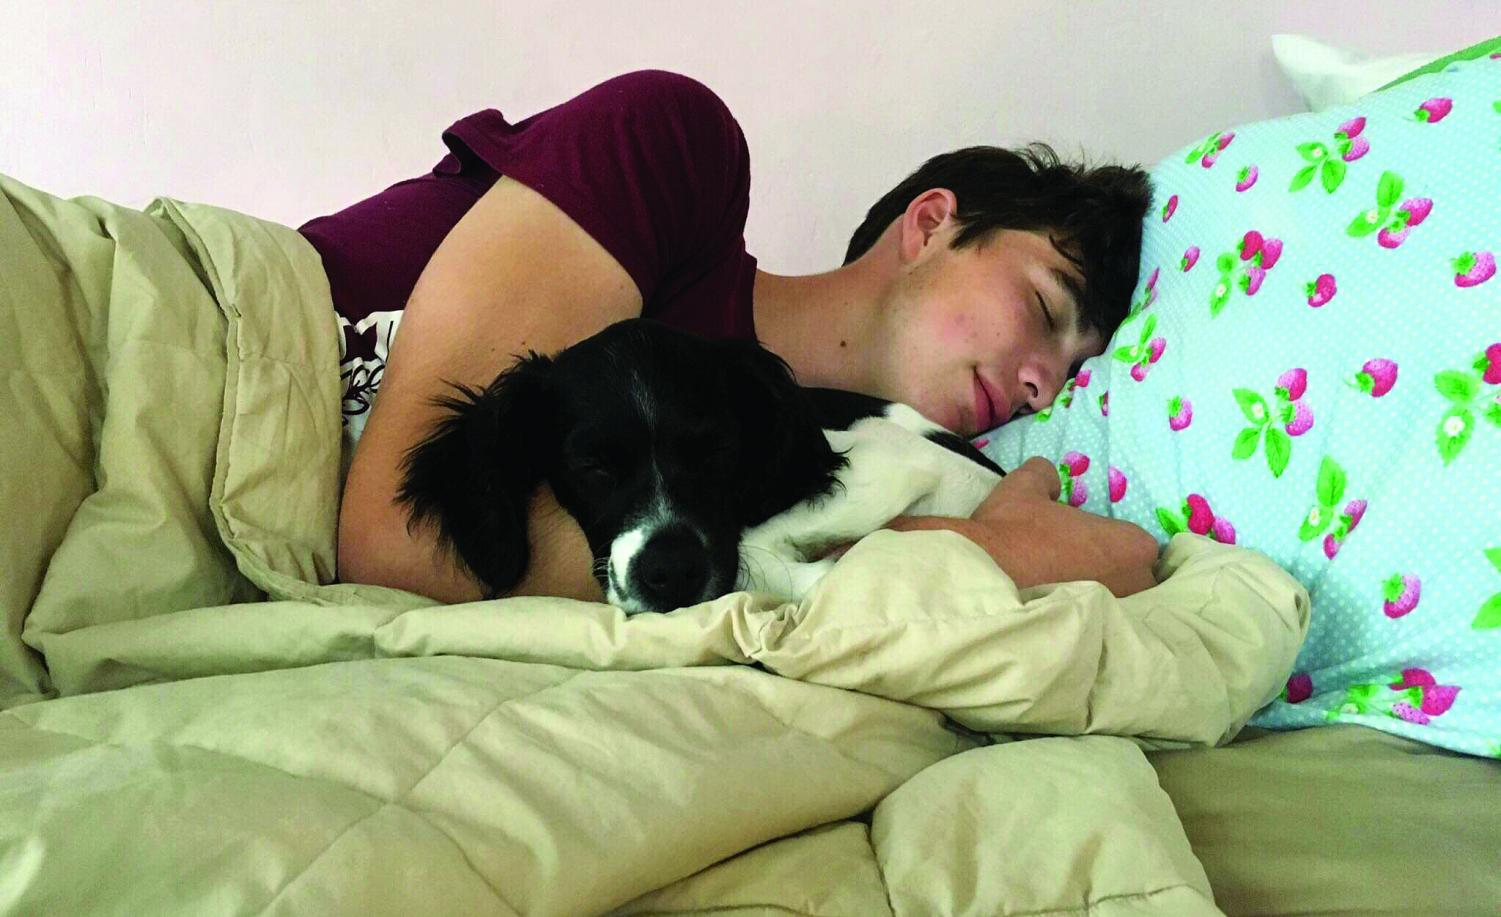 TAKING A BREAK. With his puppy in his arms, senior Jacob Beiser takes a nap, recharging after a long day. Jacob got Pippin, his dog, after he lost his nine-year-old dog over the summer.